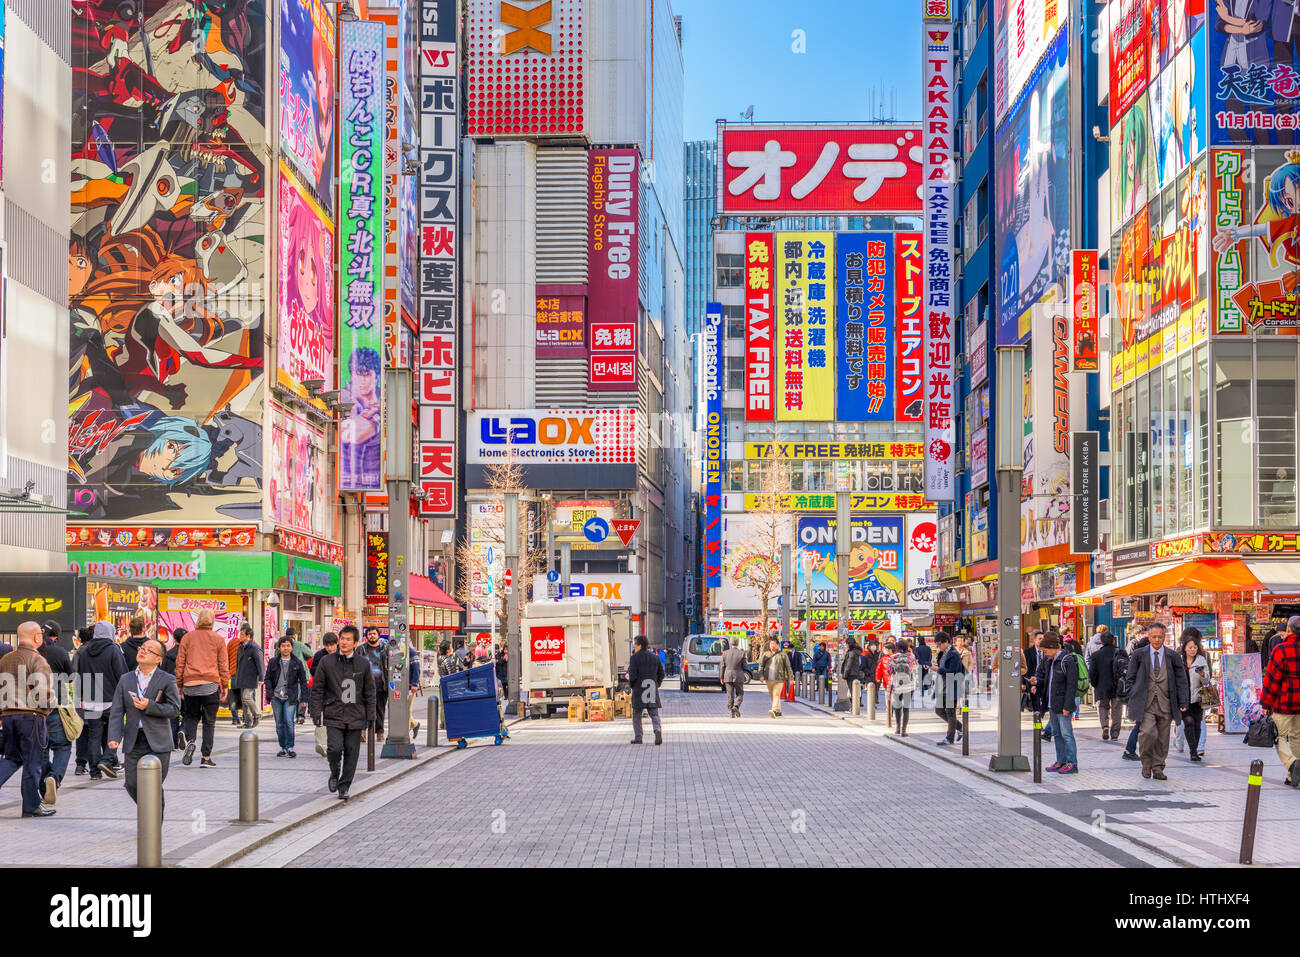 TOKYO, JAPAN - JANUARY 11, 2017: Crowds pass below colorful signs in Akihabara. The historic district electronics - Stock Image